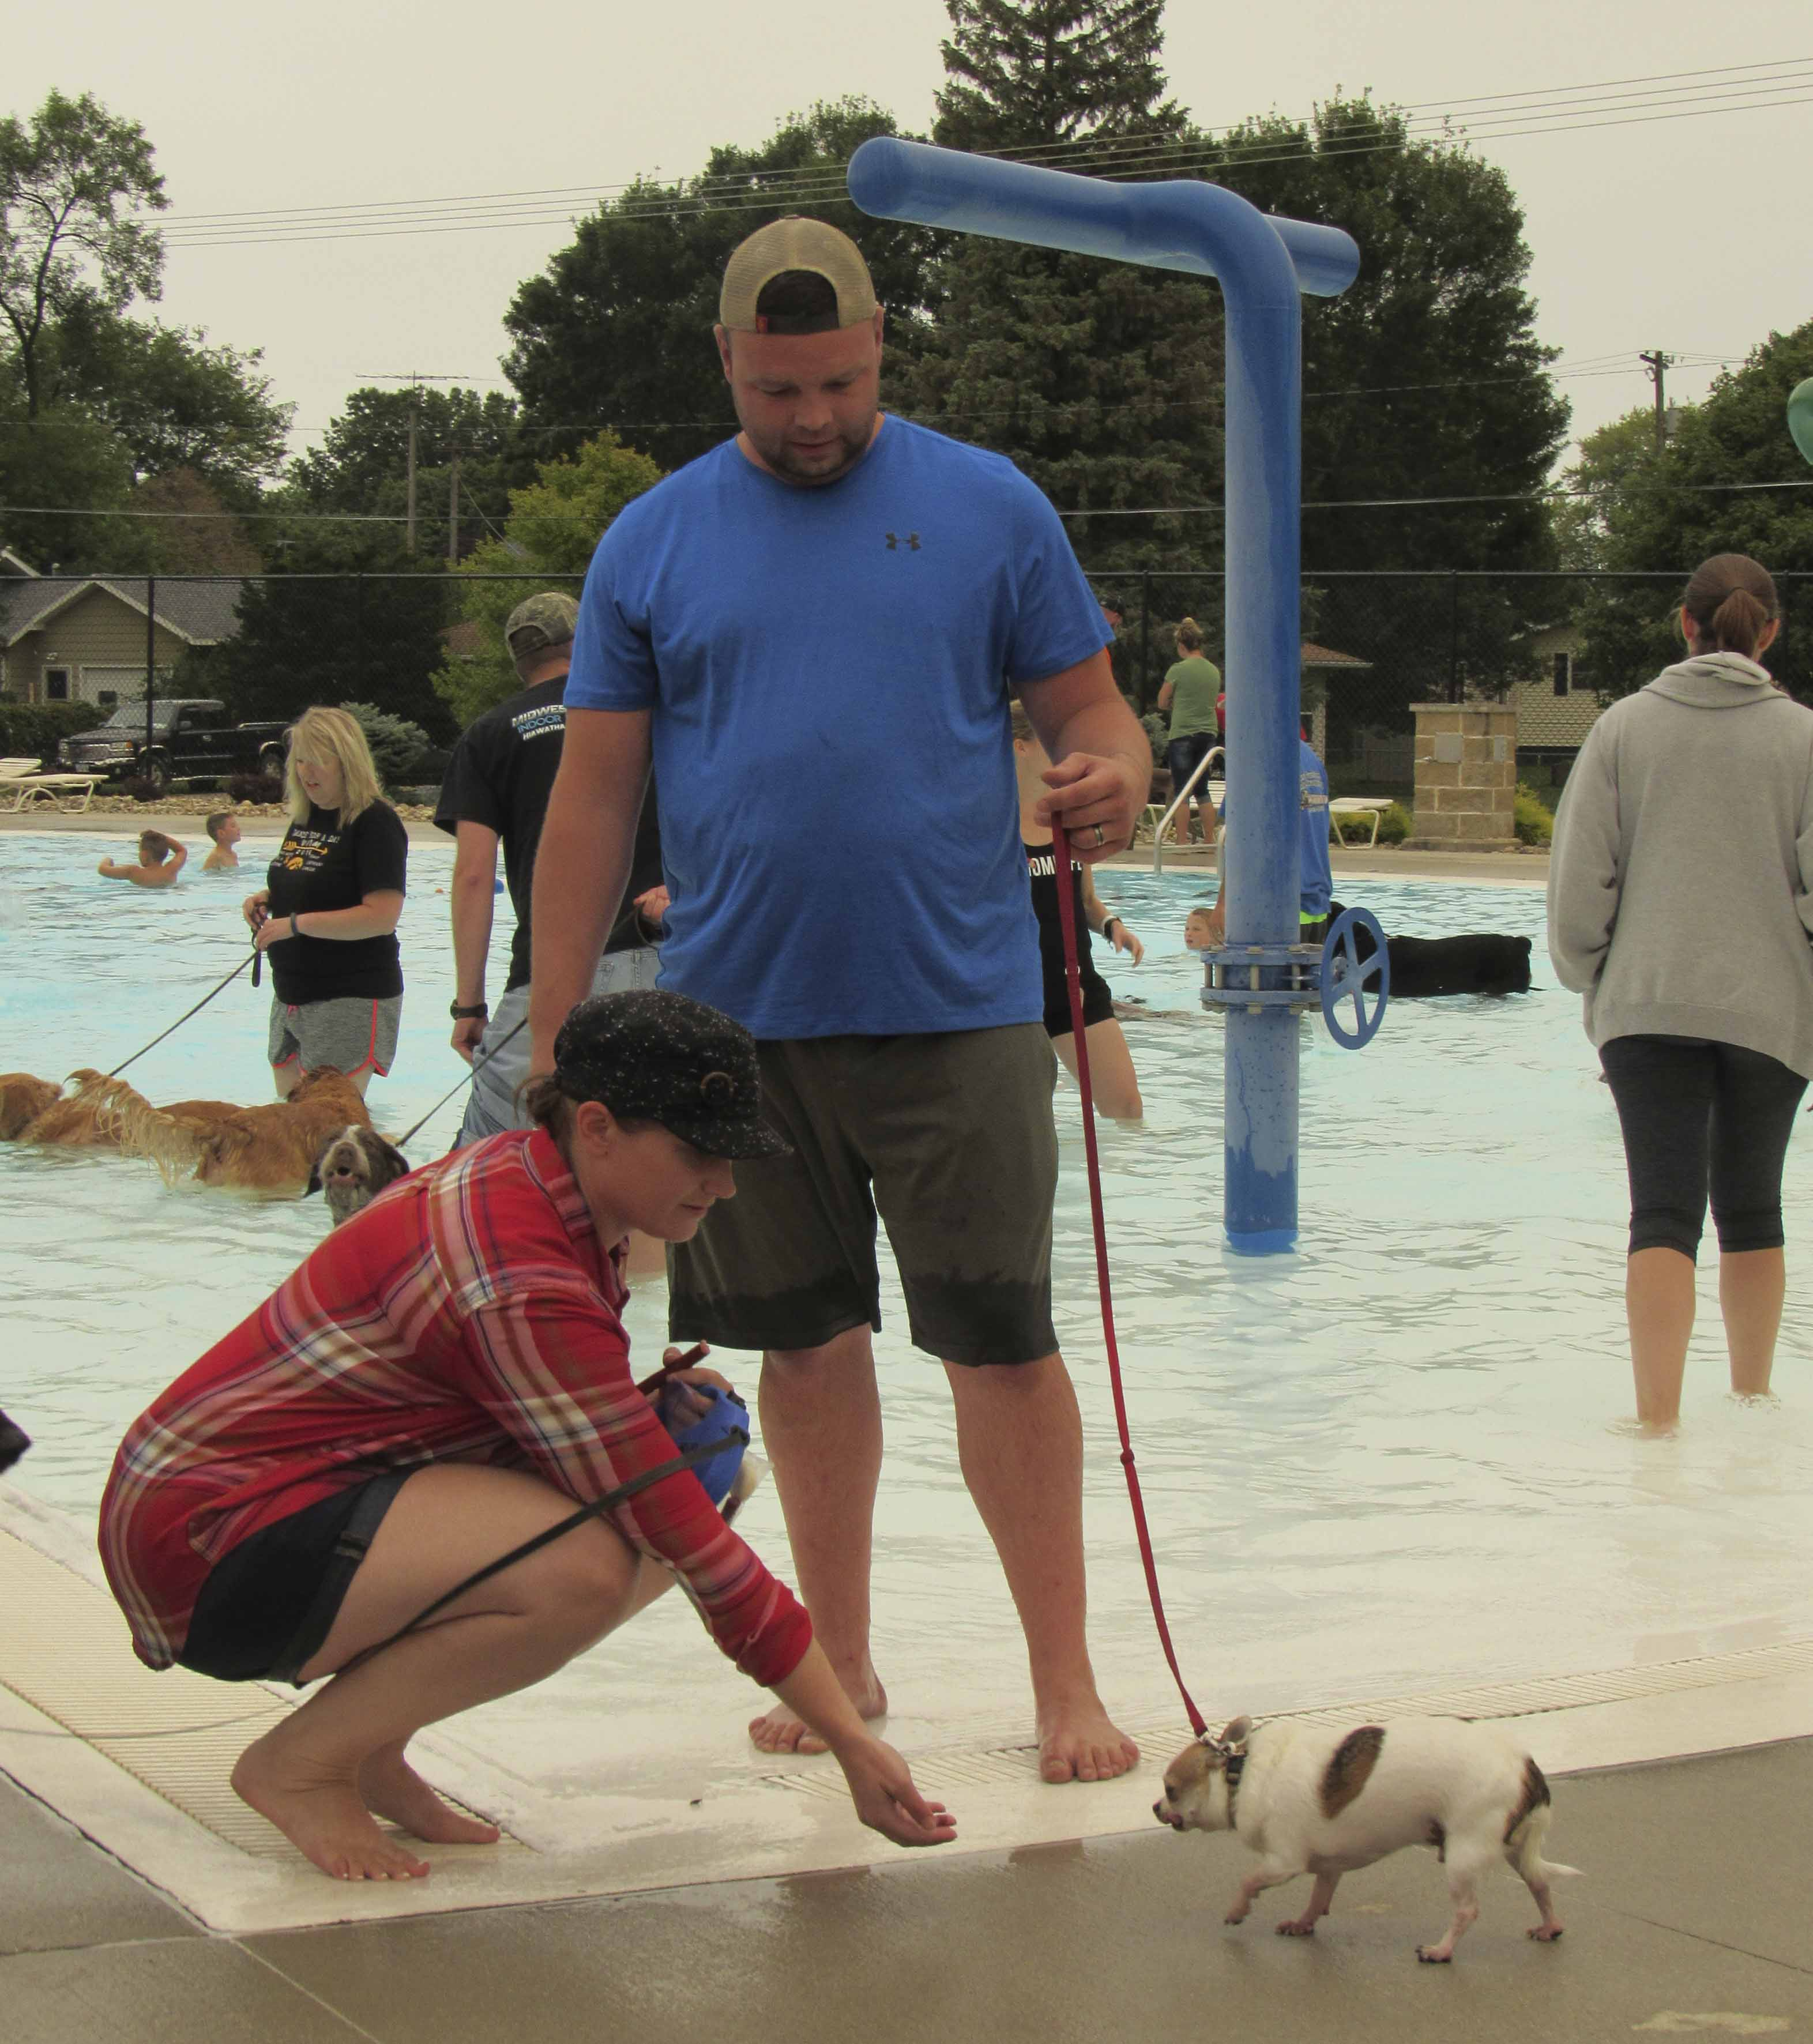 JC and Lindsey Jensen of Monticello ease their dog Tank into the water at the Monticello Aquatic Center. On Sept. 4, Parks and Rec hosted an end-of-summer swimming party for local dogs and their owners. (Photo by Kim Brooks)